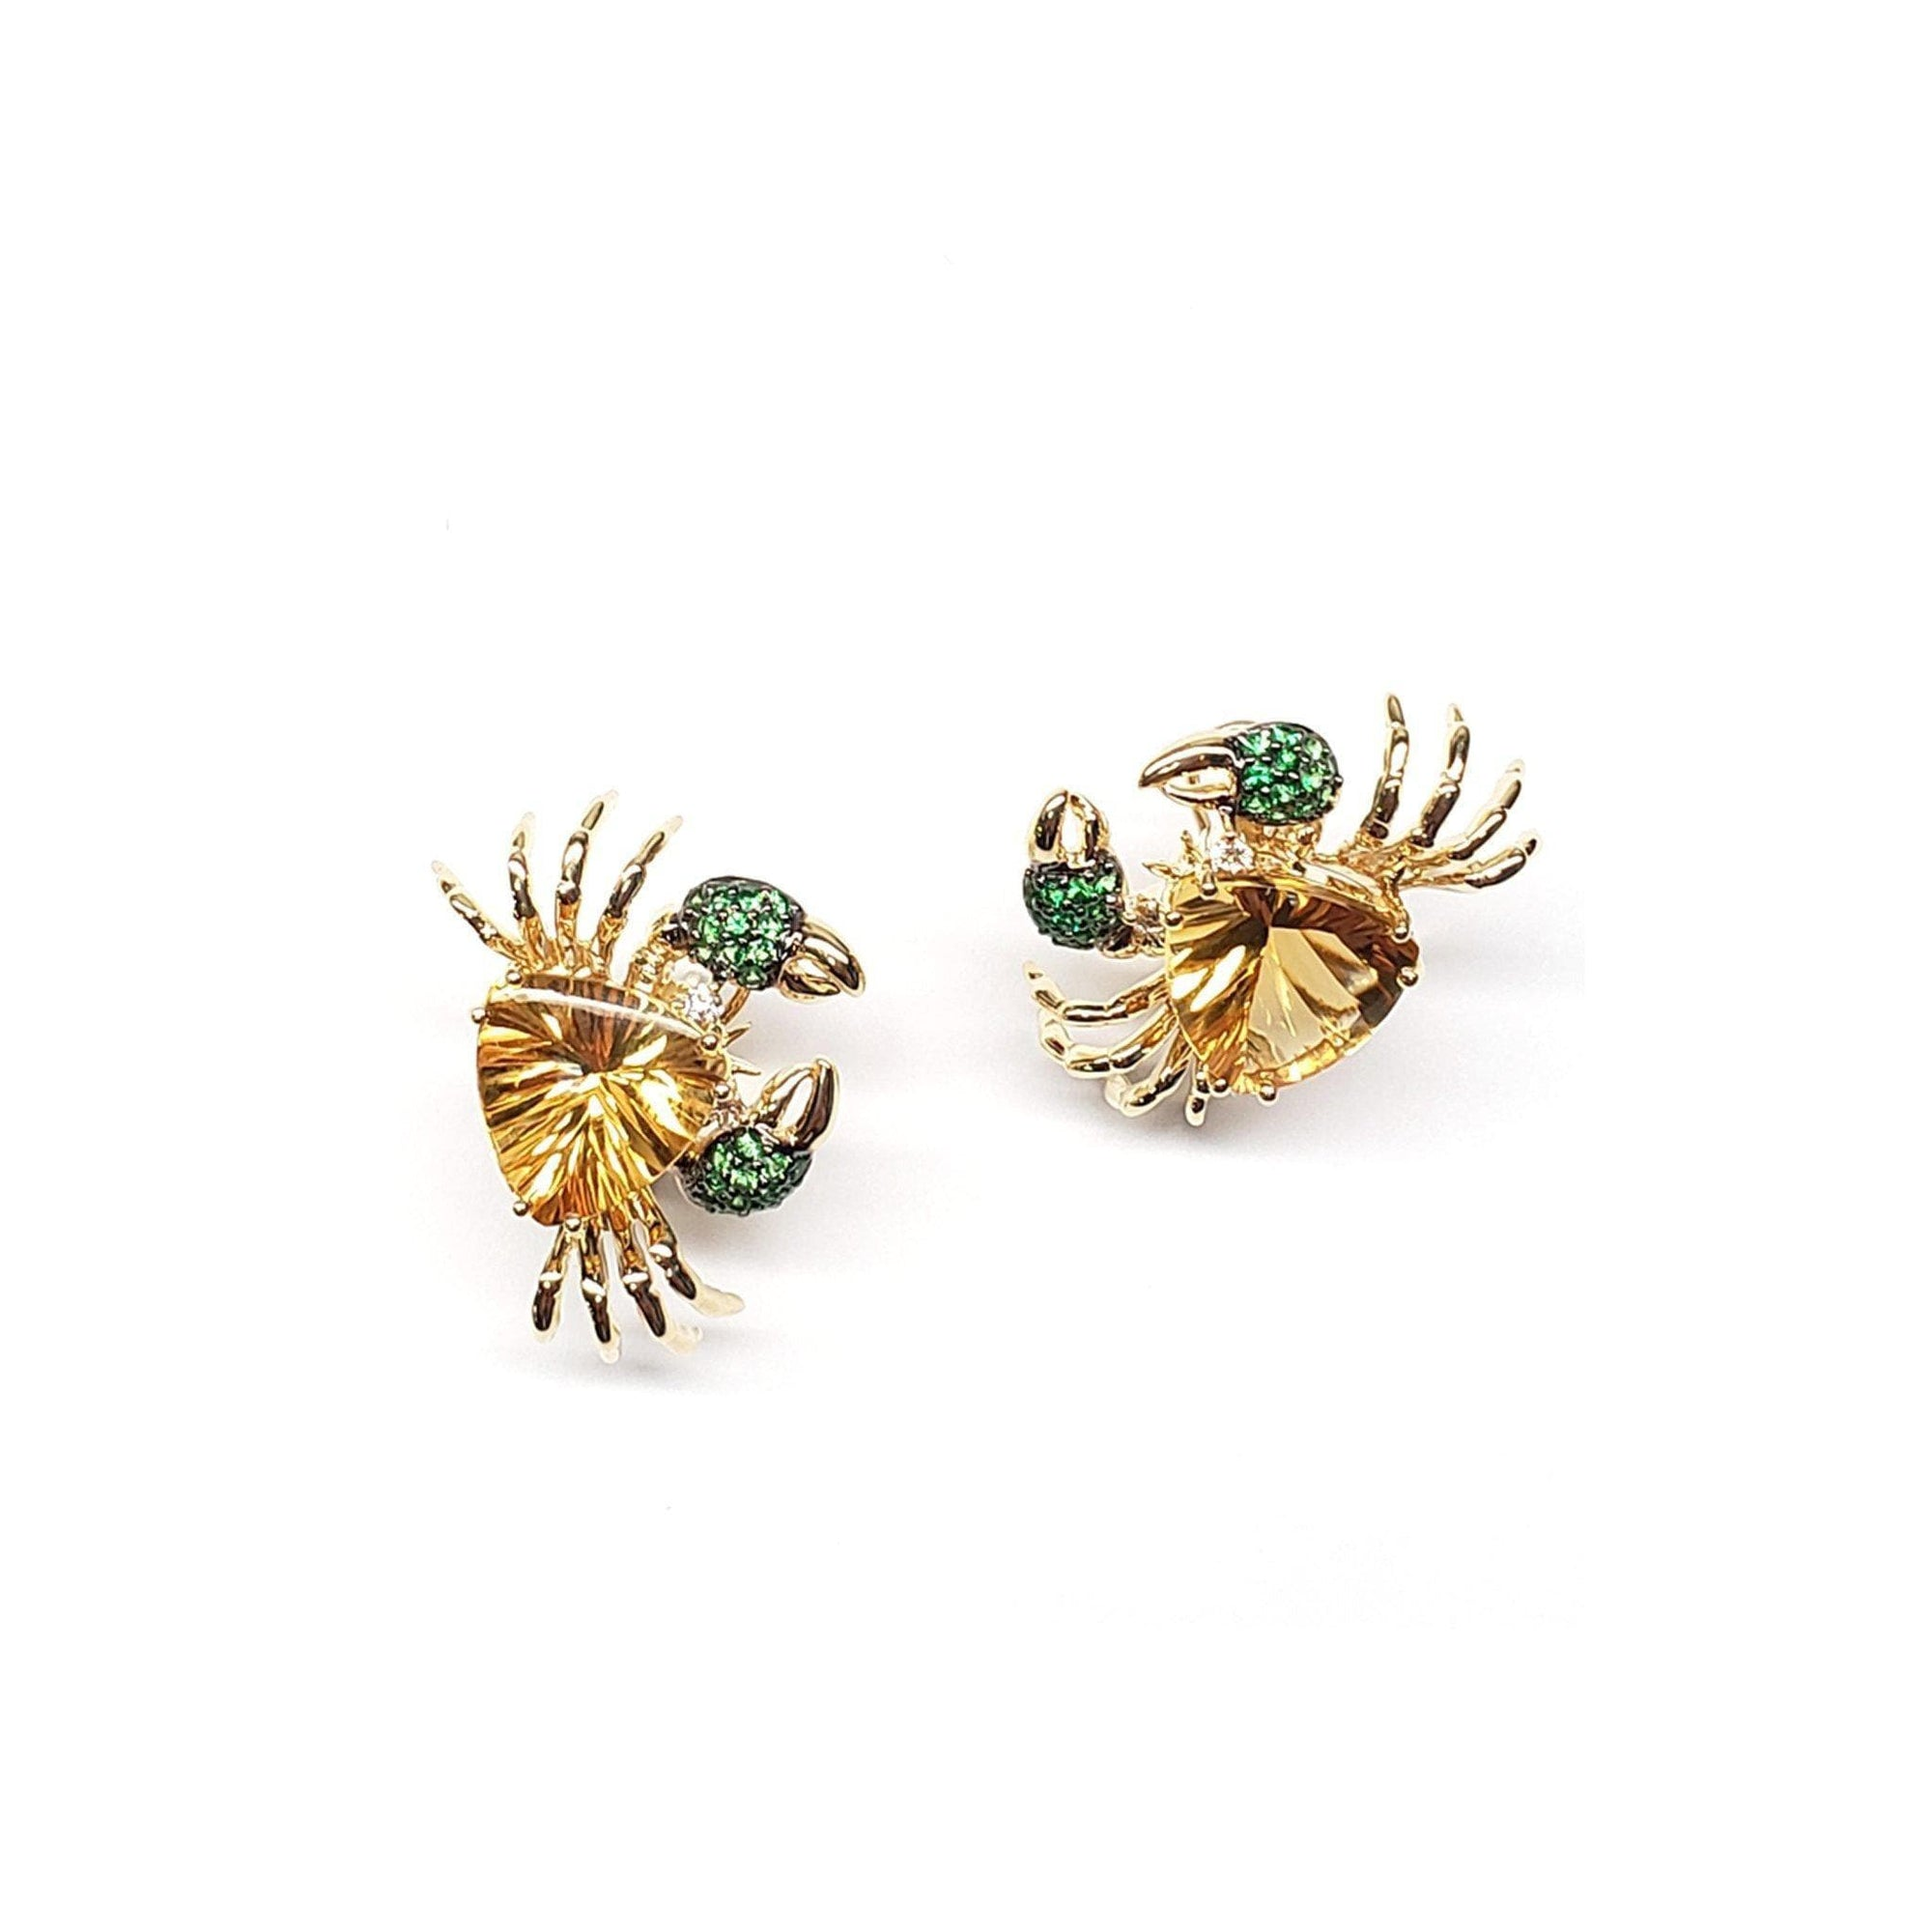 14 Karat Gold Crab Earrings with Citrines, Green Garnets and Diamonds - Maui Divers Jewelry